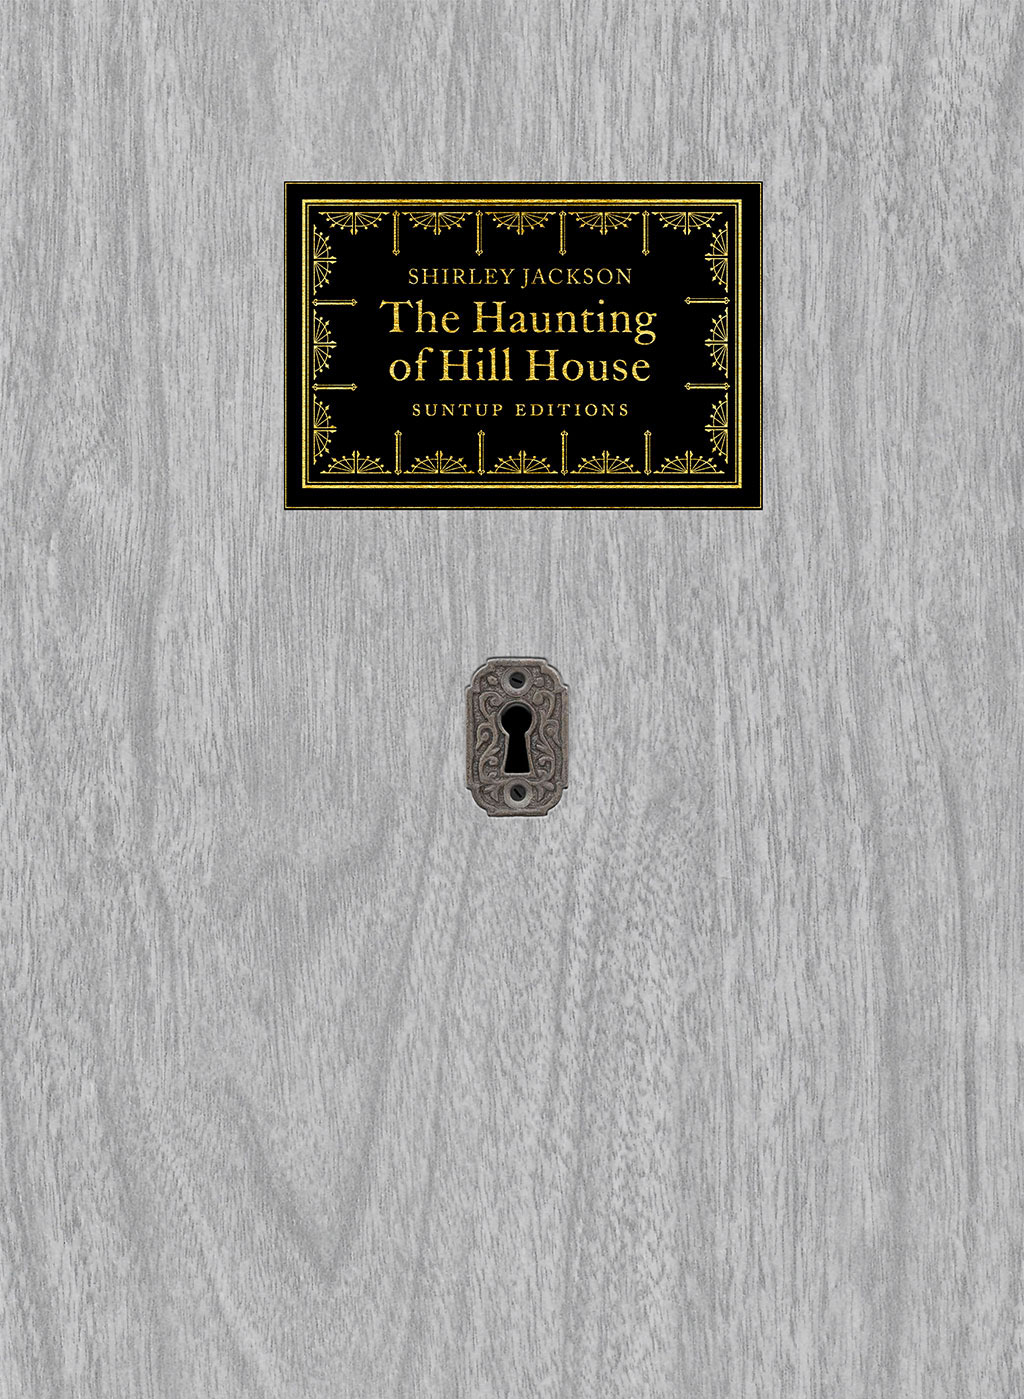 The Haunting Of Hill House Suntup Editions